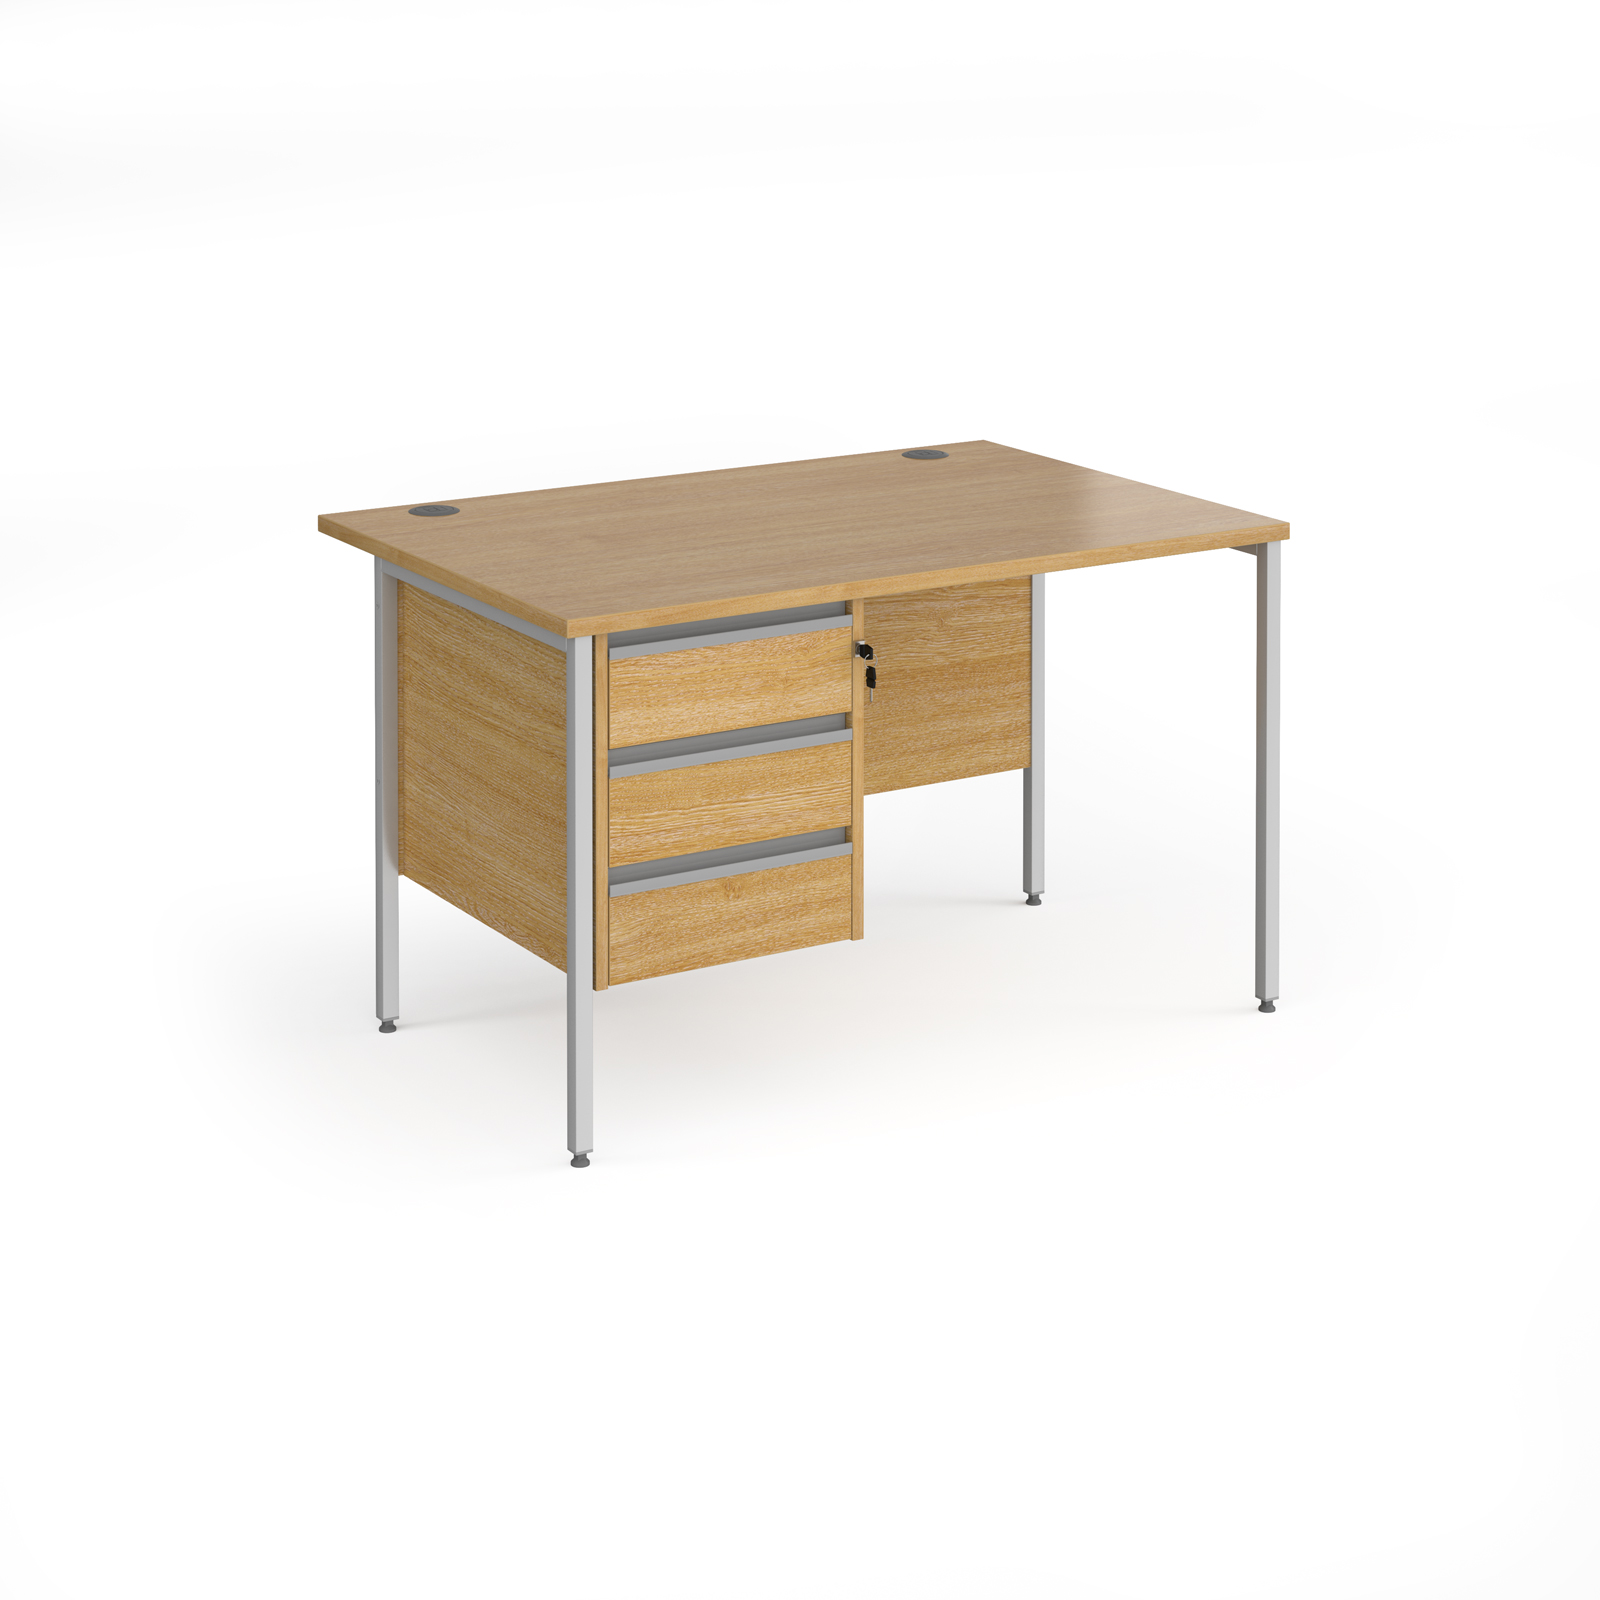 Contract 25 straight desk with 3 drawer pedestal and silver H-Frame leg 1200mm x 800mm - oak top